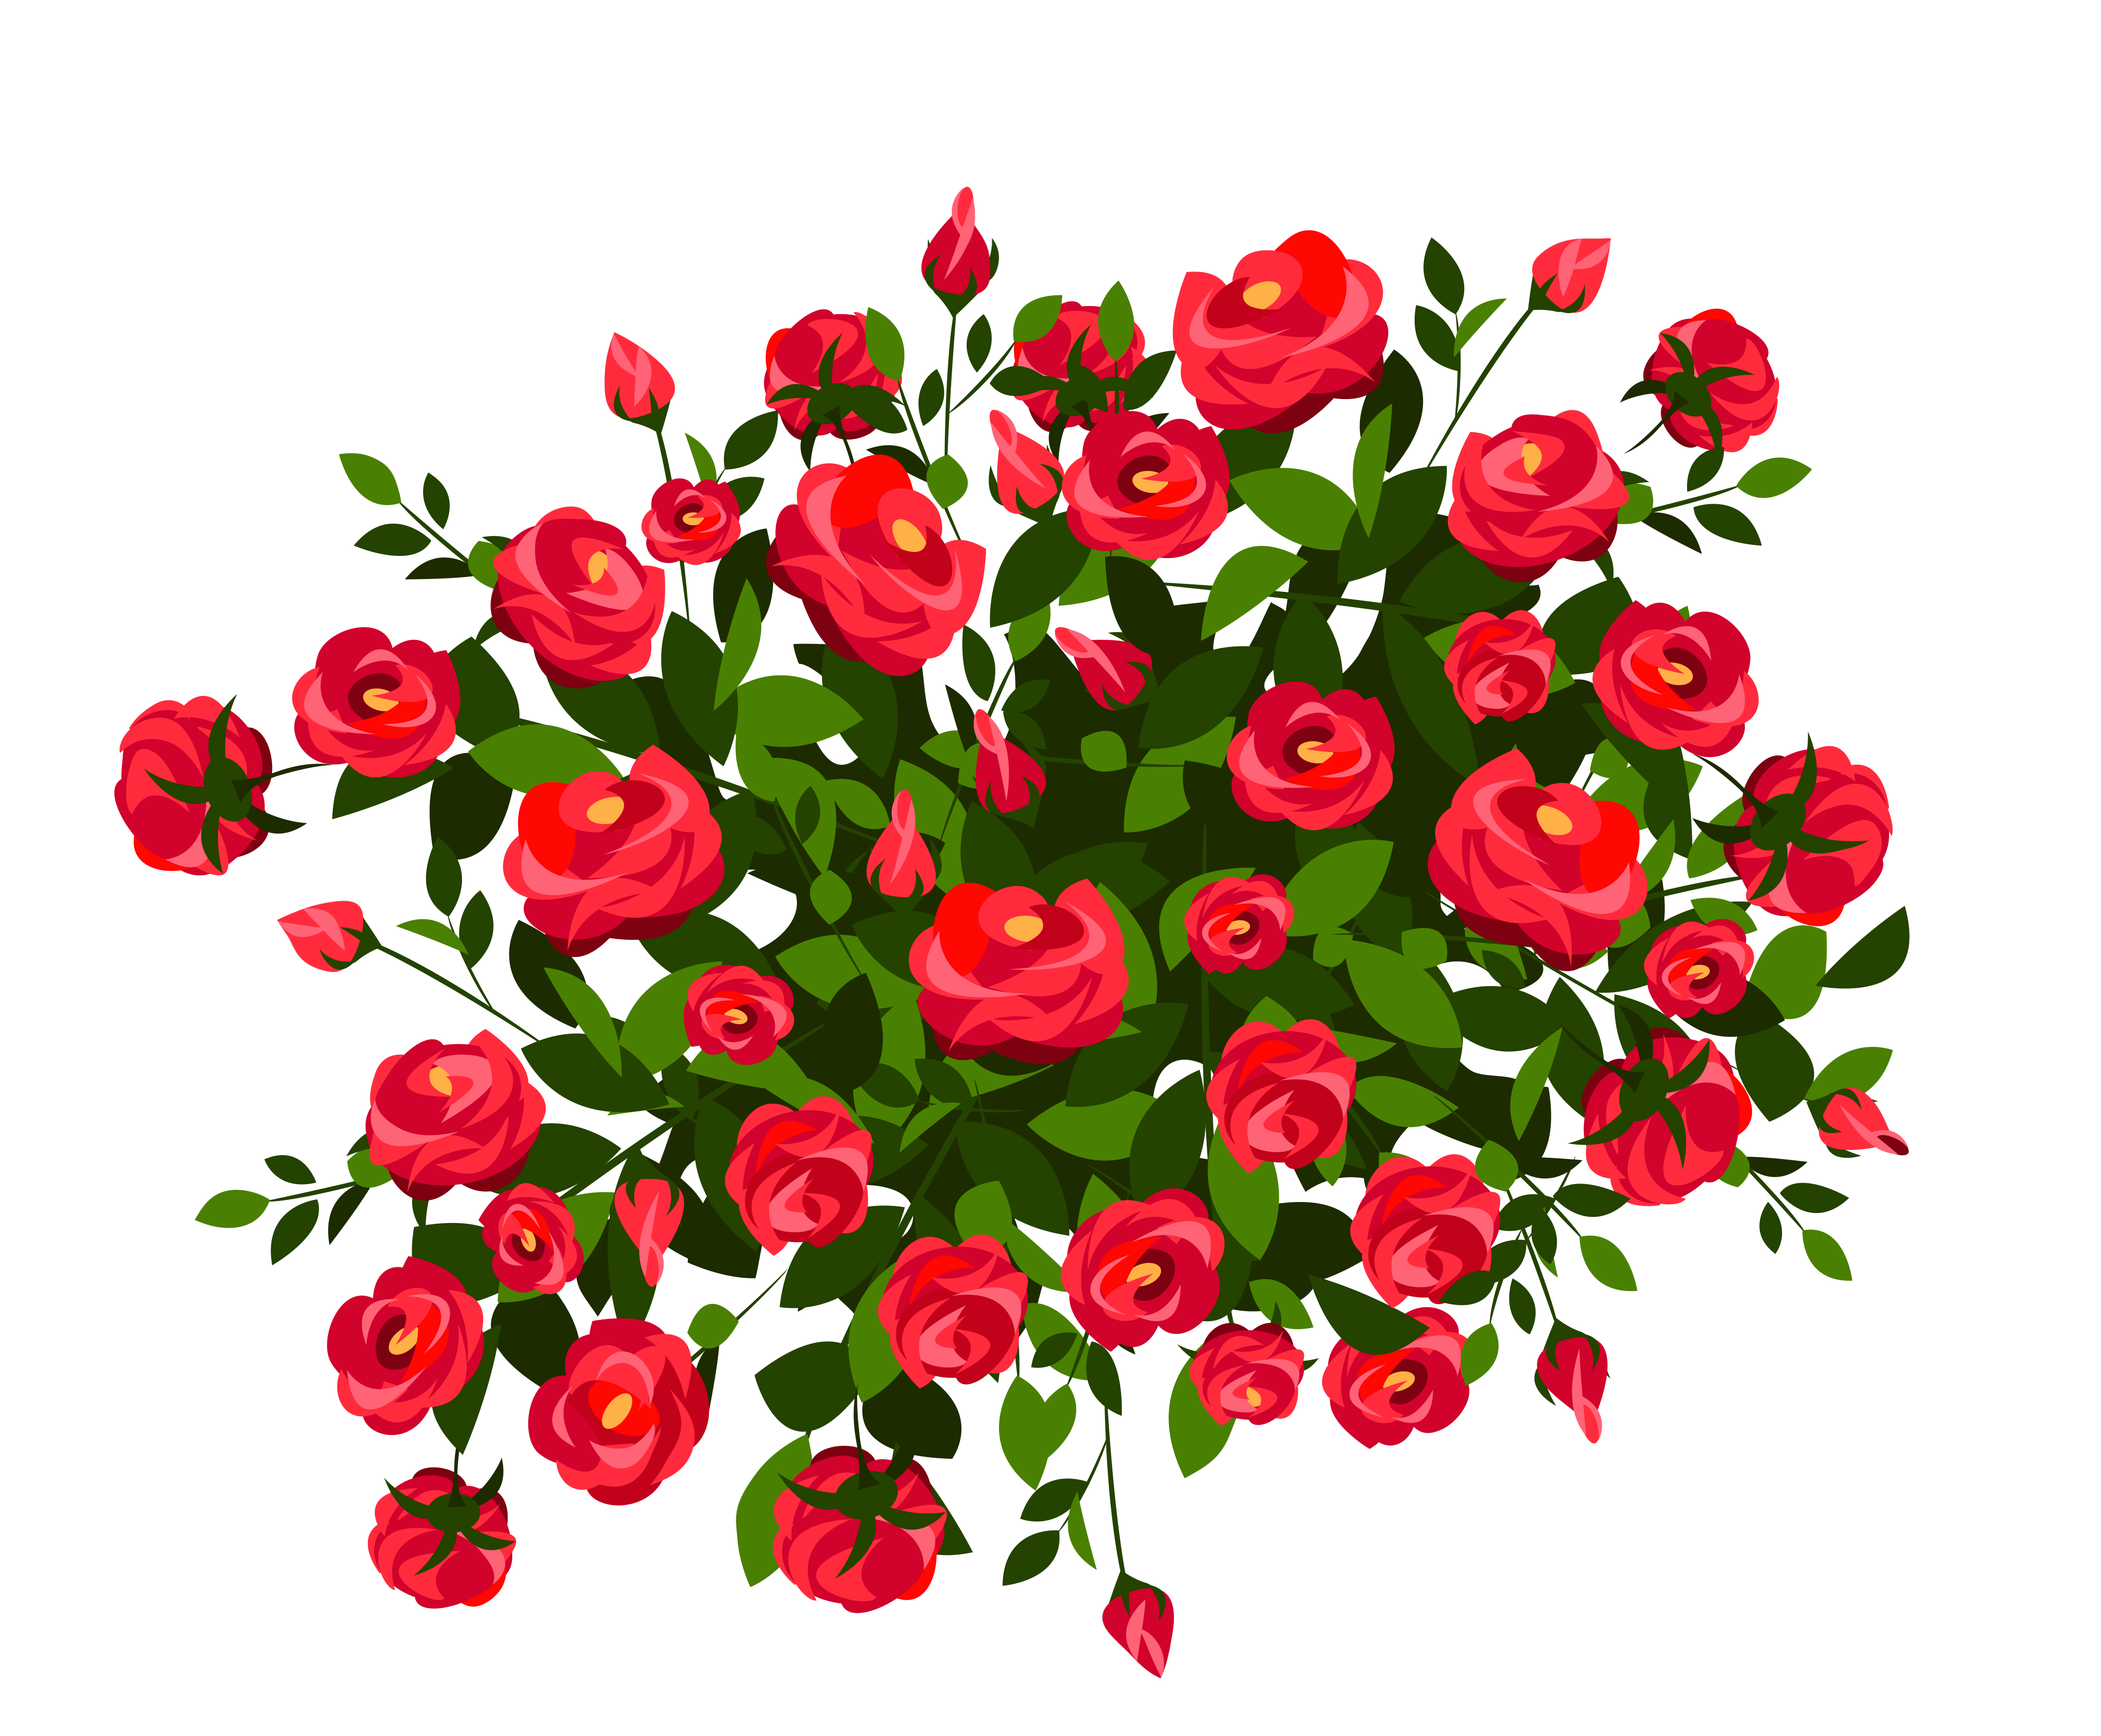 Rose Bush clipart Rose clipart Download drawings clipart